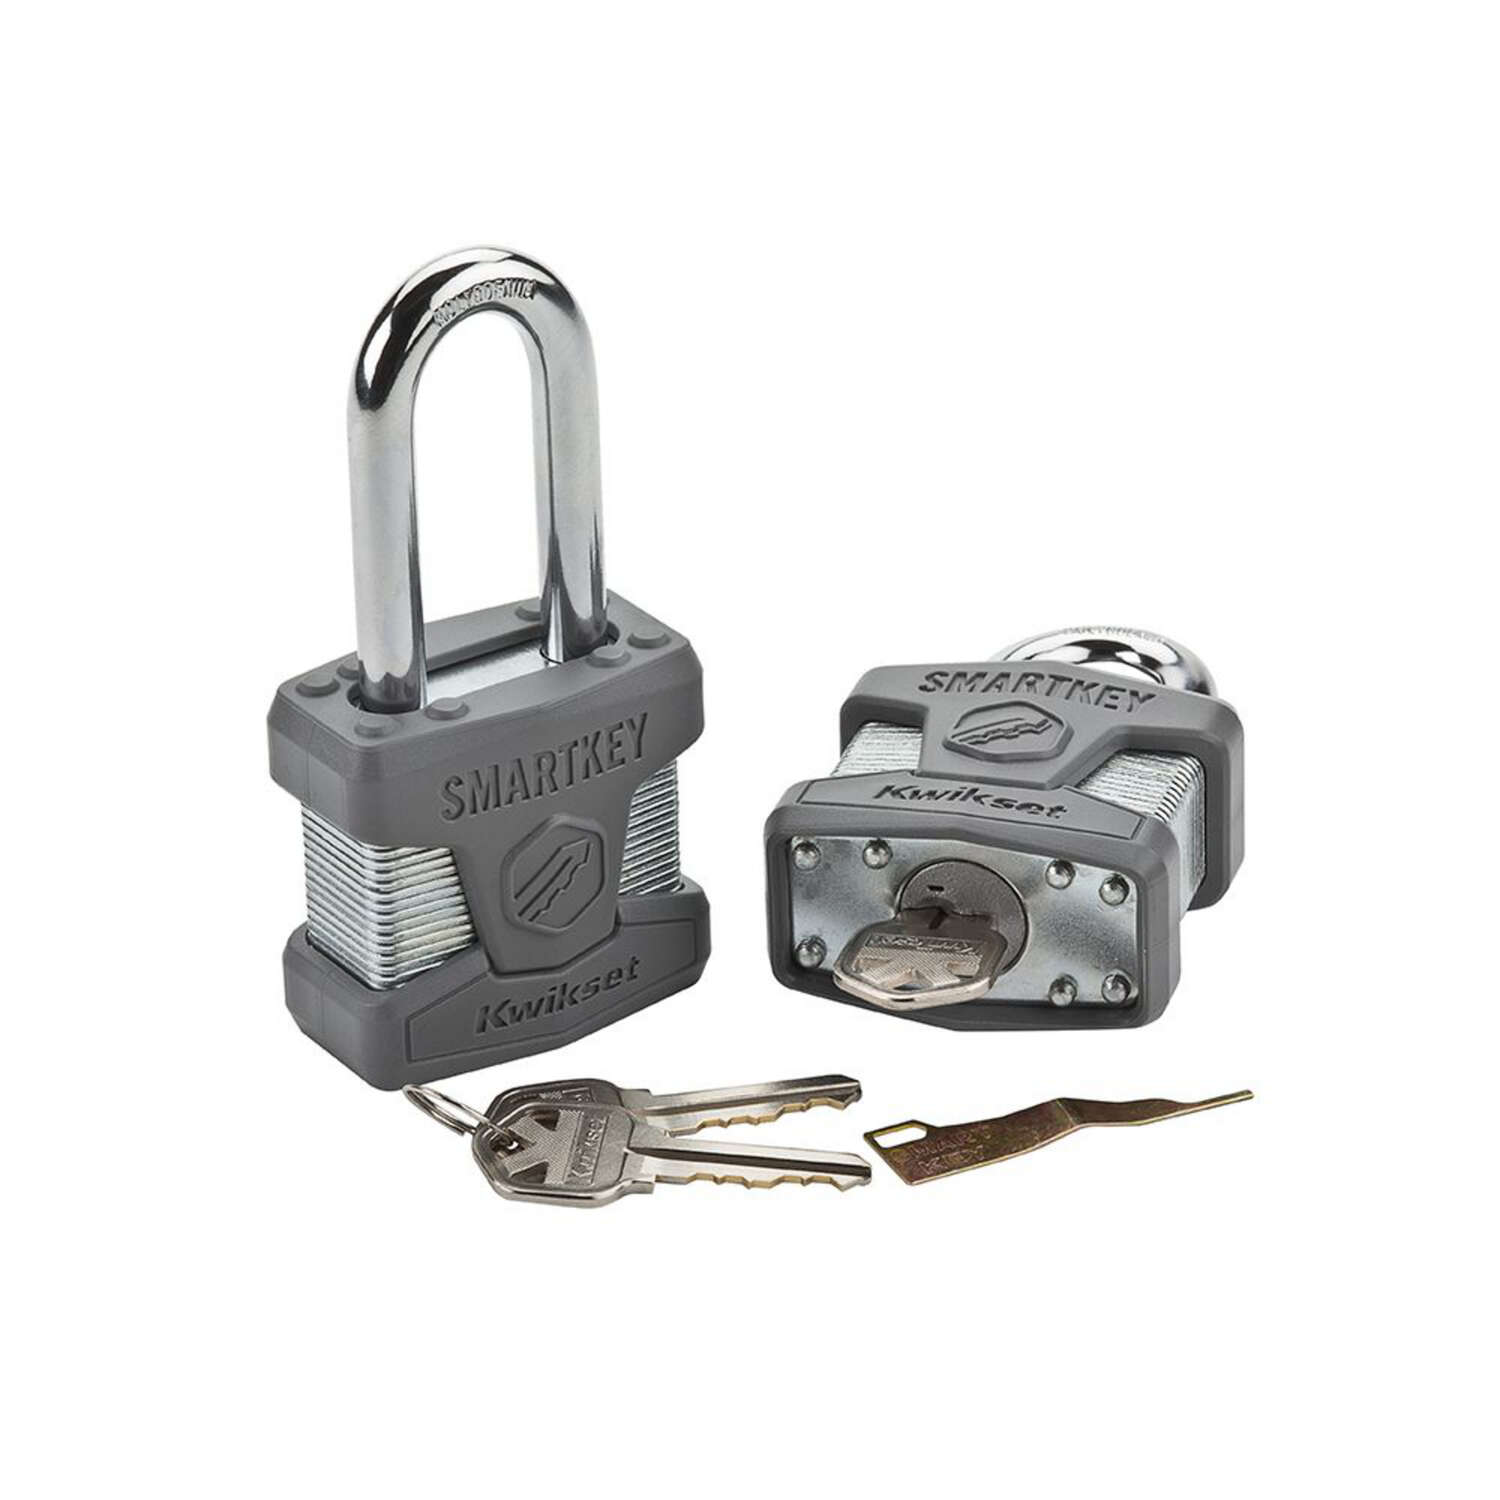 Kwikset  4.5 in. W x 1.7 in. H Dual Ball Bearing Locking  Laminated Steel  Padlock  1 pk Keyed Alike